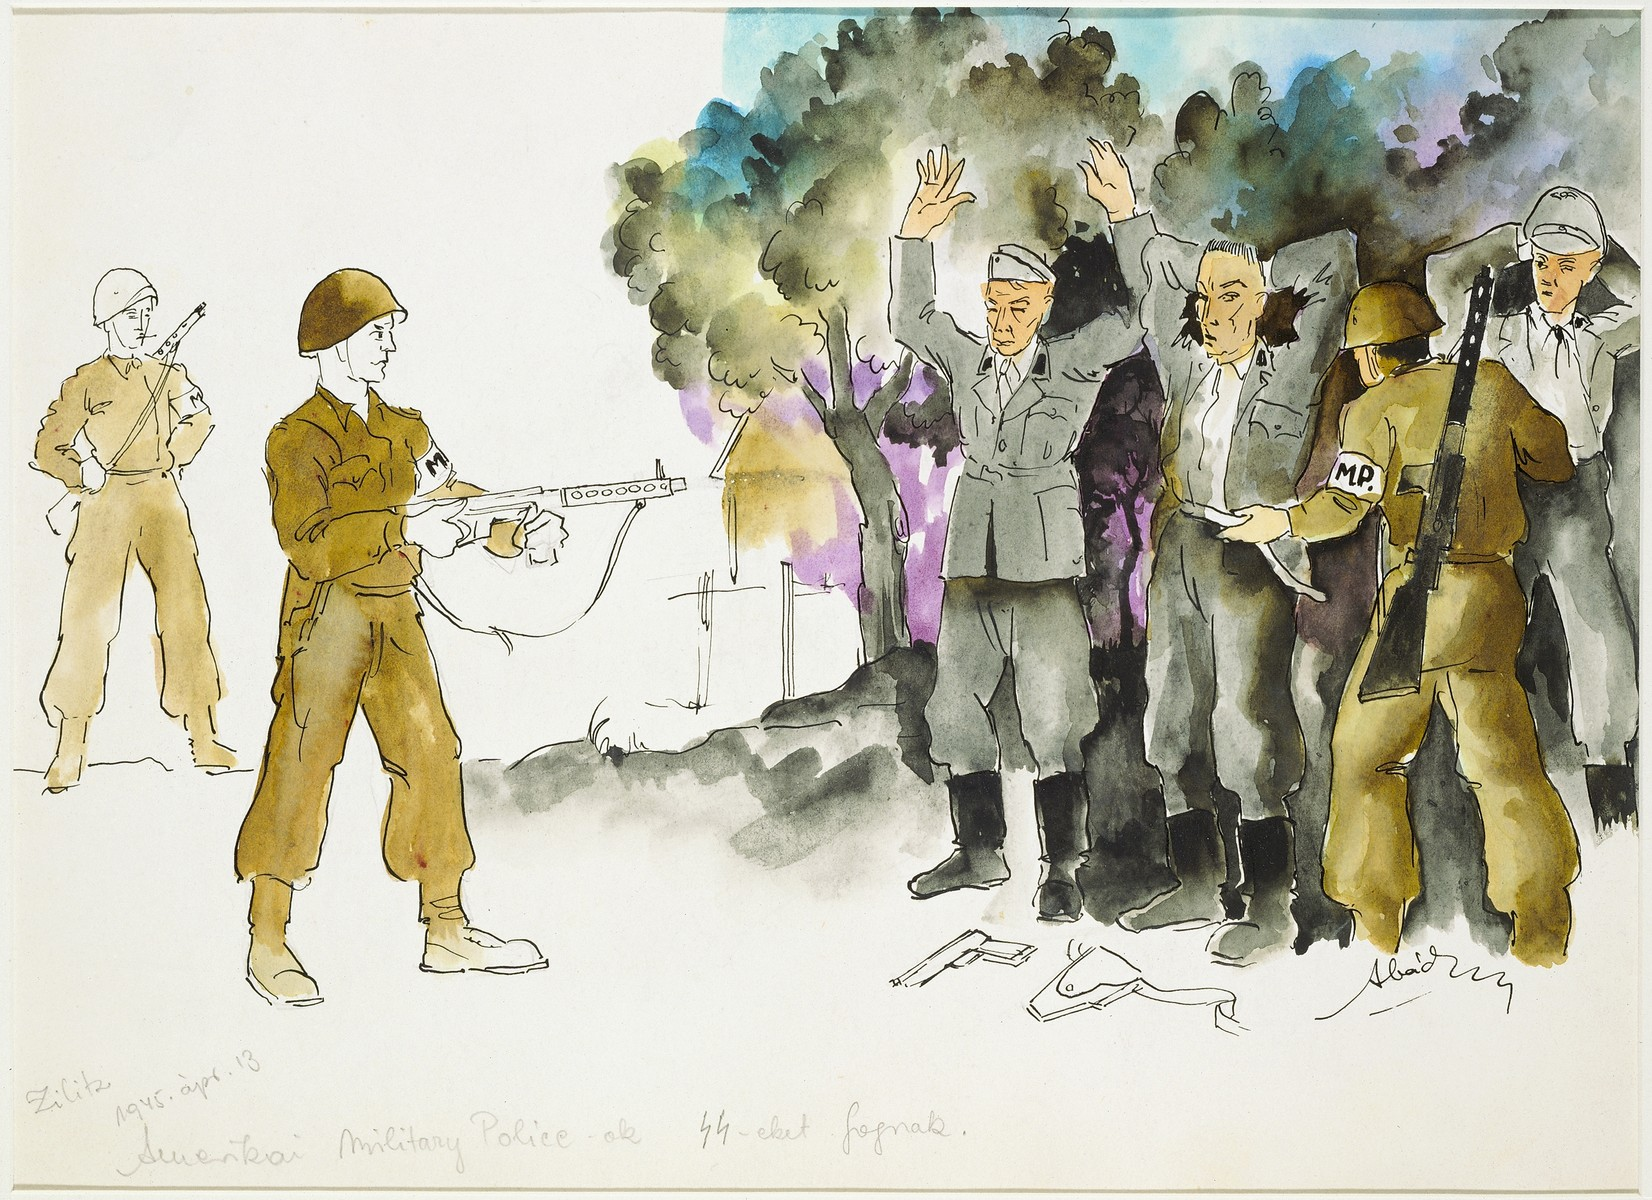 """American Soldiers Rounding Up SS Guards""  by Ervin Abadi. Watercolor and ink drawing.  Ervin Abadi, a Hungarian Jew from Budapest, was an aspiring young artist when WWII began.  He was drafted into the Hungarian labor service in the early 1940s.  Abadi managed to escape, but  was recaptured and immediately deported to Bergen-Belsen.  When the camp was liberated, his condition was such that he required extended hospitalization.  During his convalescence, he created dozens of works of holocaust art, including ink drawings, pencil and ink sketches and  watercolors. After recuperating Abadi returned to Budapest, where he published a collection of his watercolors in 1946.  After becoming disillusioned with the communist regime in Hungary, he moved to Israel, where he continued to publish in Hungarian and Hebrew.  He died in Israel in 1980."